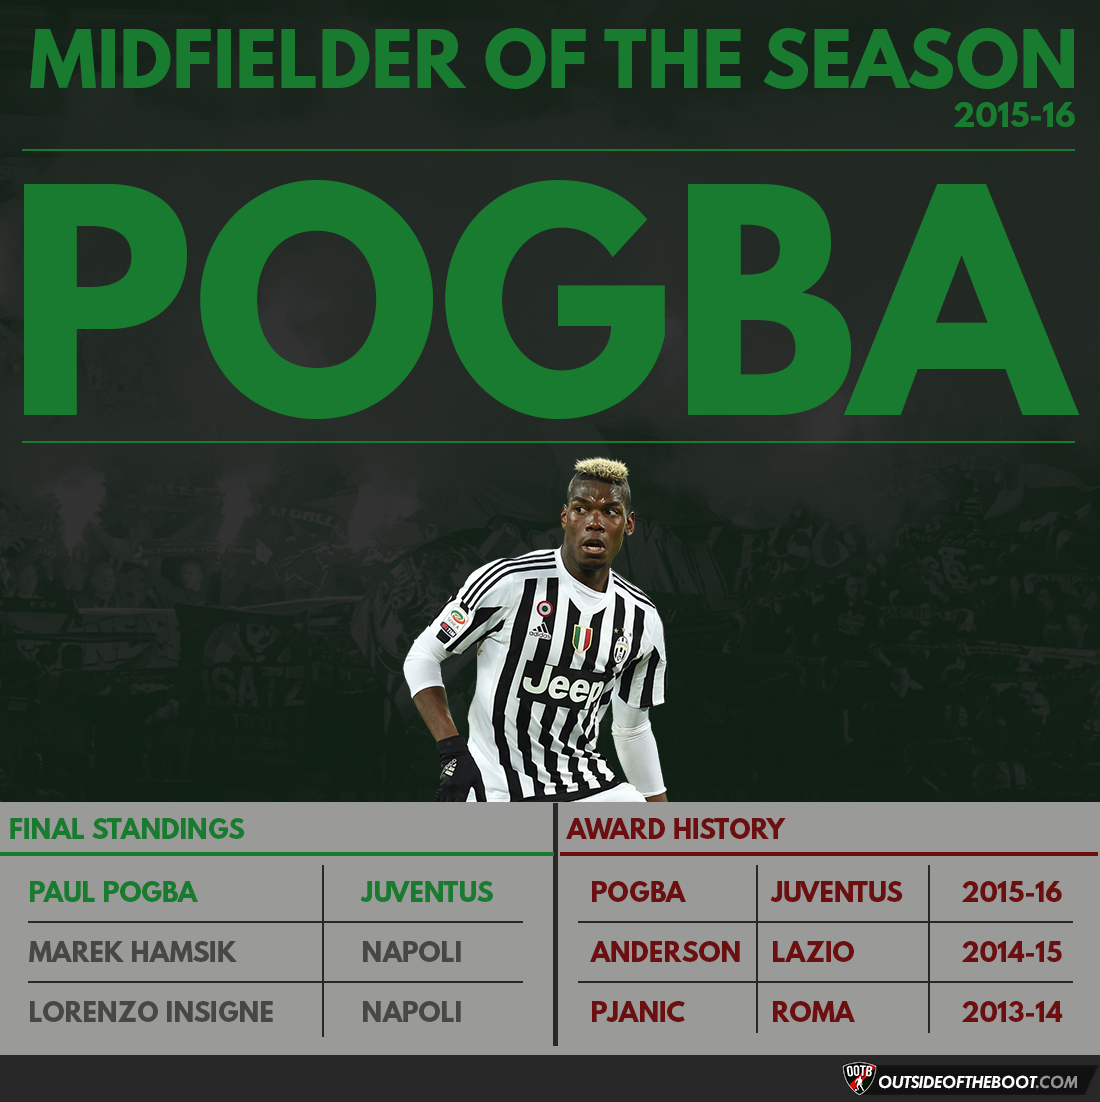 Serie A Midfielder of the Season 2015-16